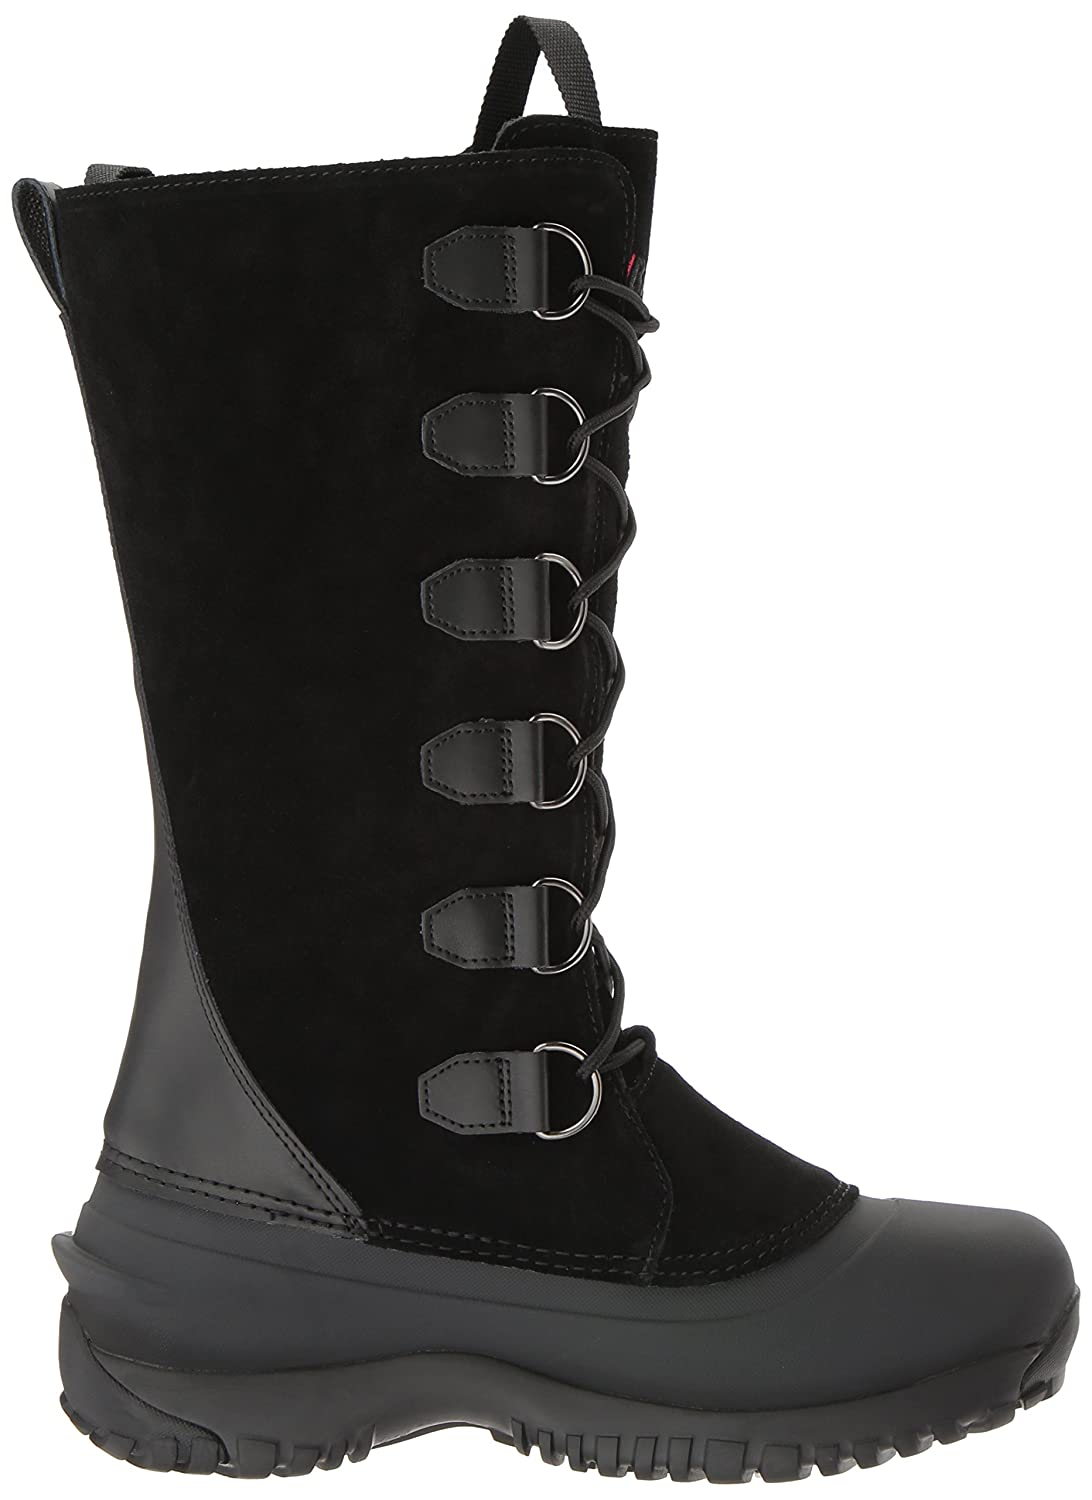 Baffin Women's Coco Insulated 8 Suede Winter Boot B00HNTP2ZY 8 Insulated B(M) US|Black ca3bfd